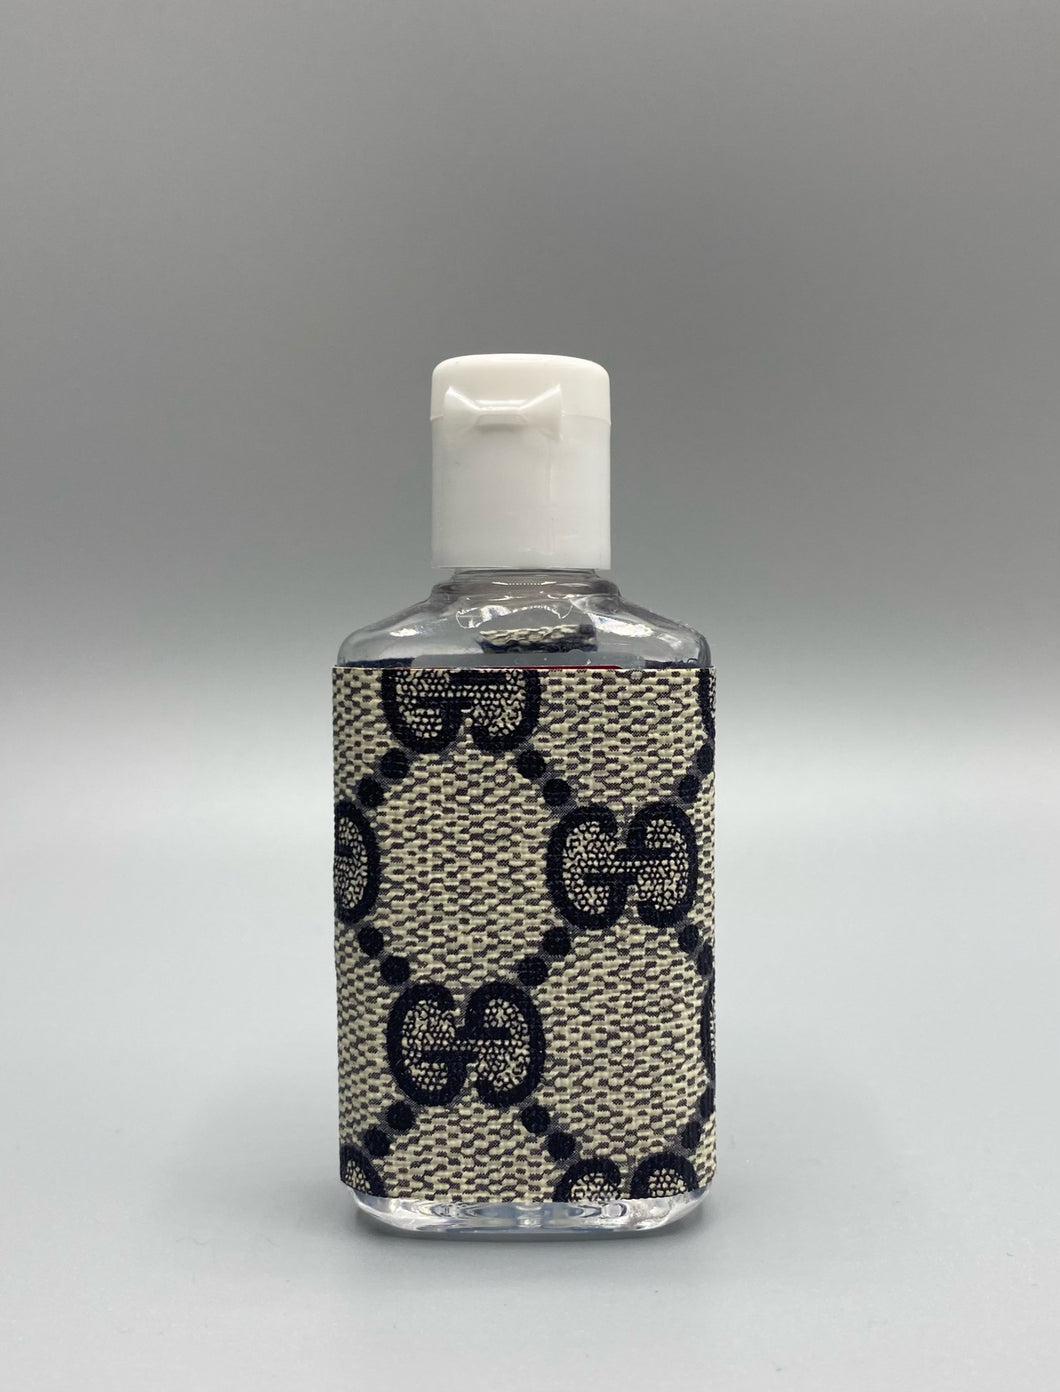 GG Monogram Hand Sanitizer